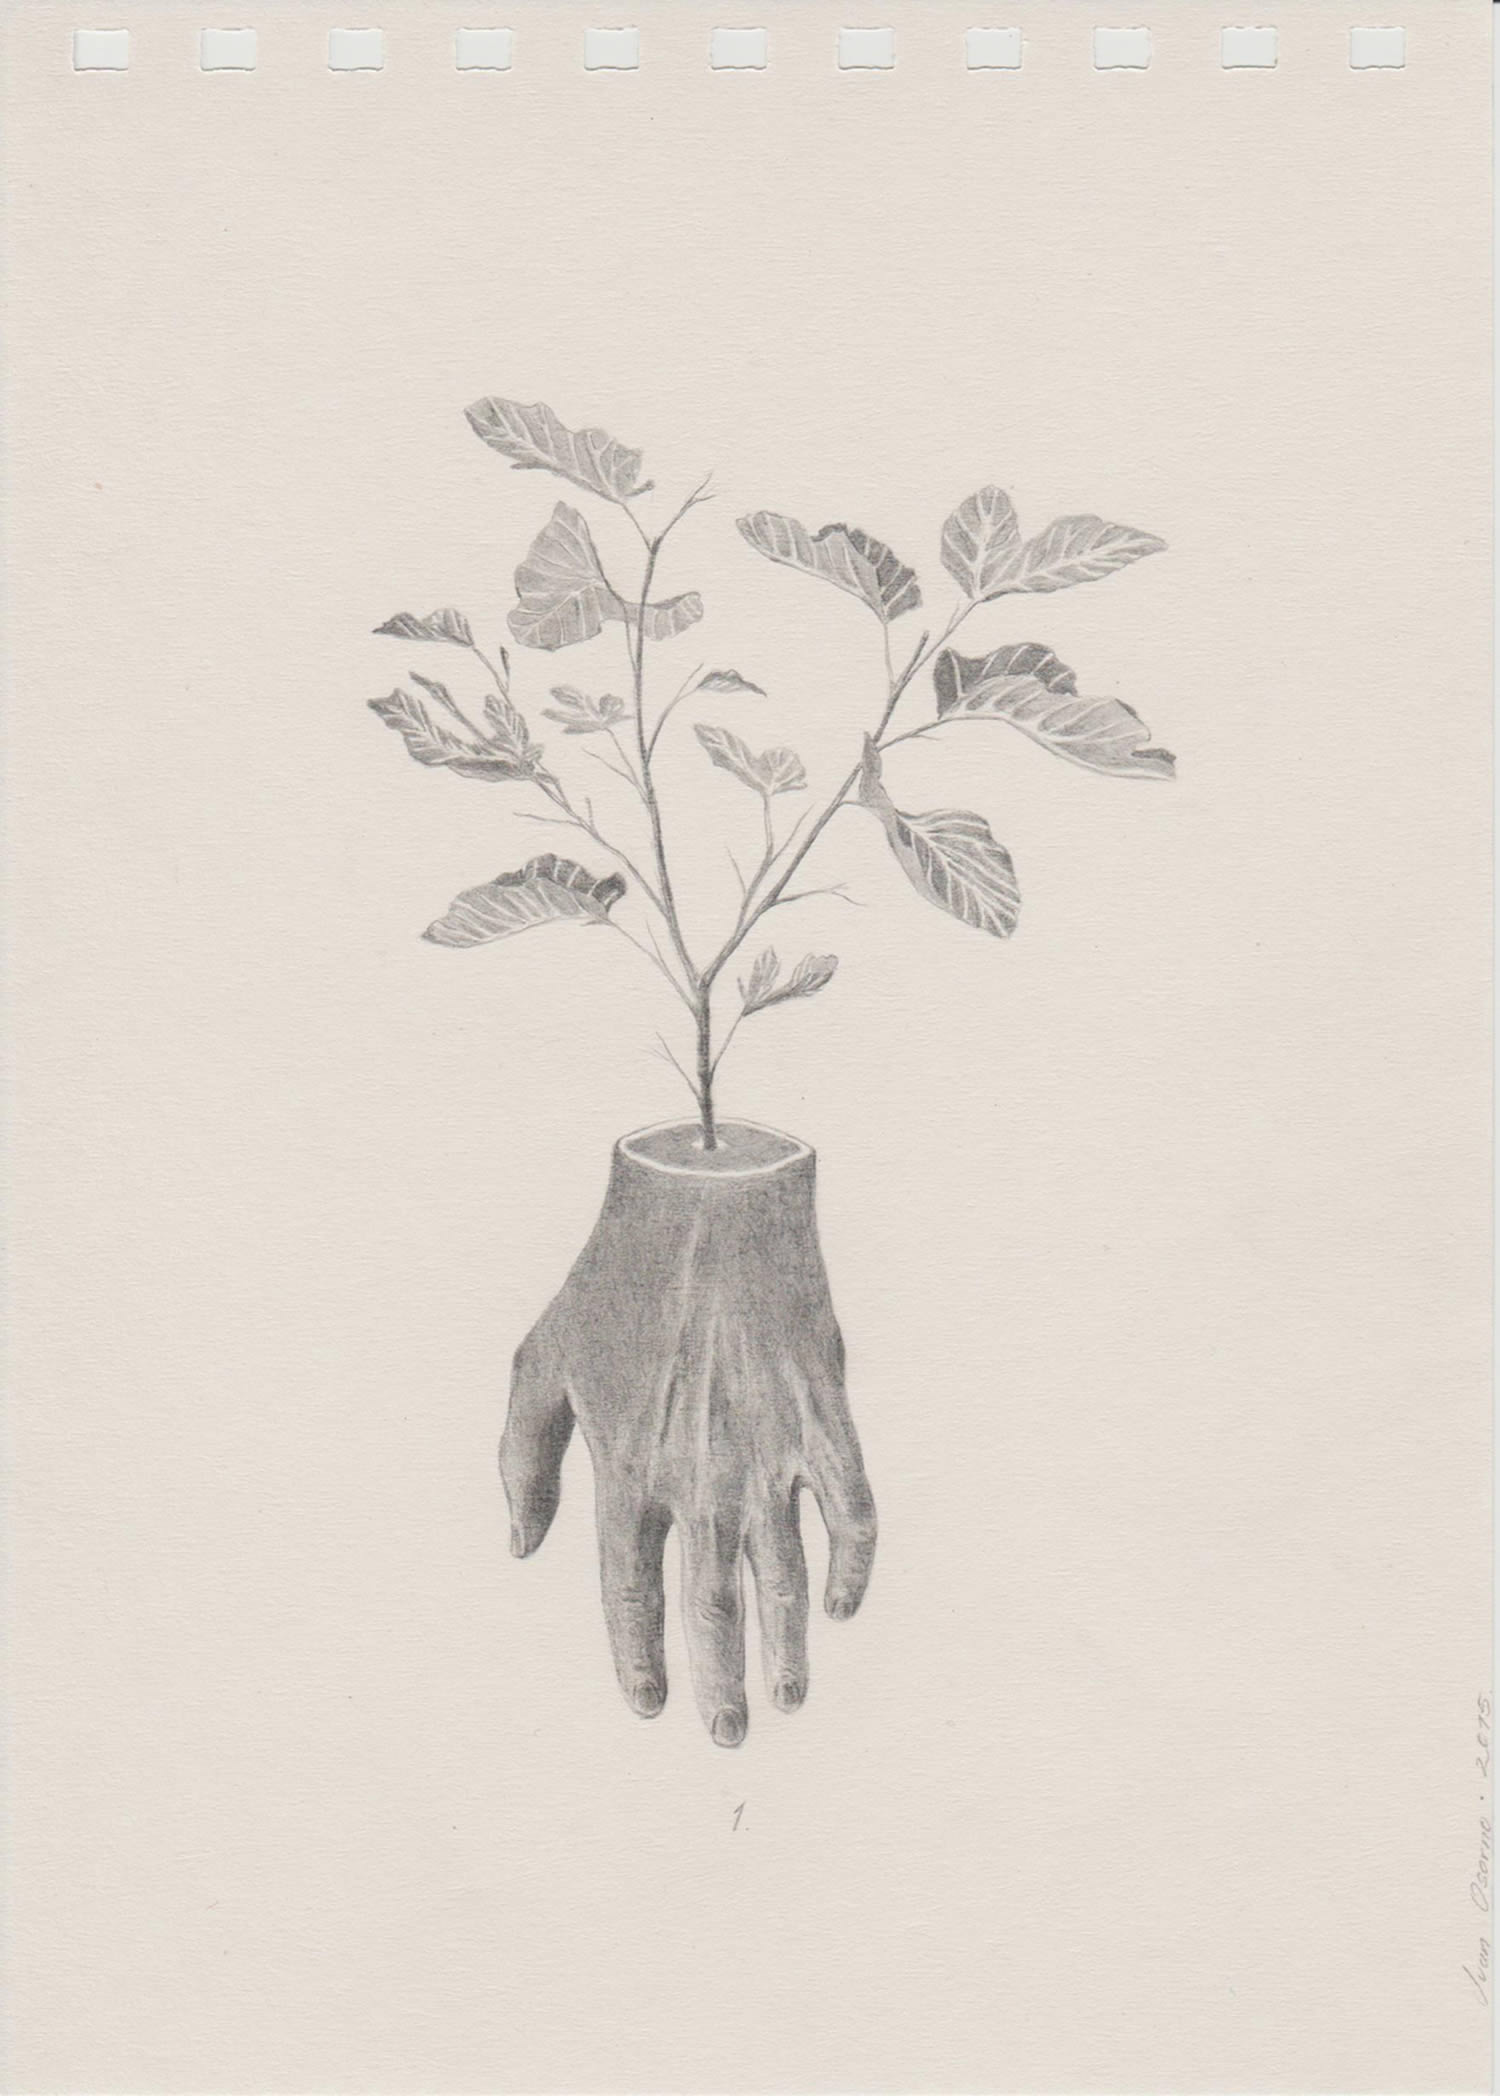 plant growing out of hand, drawing, pencil art